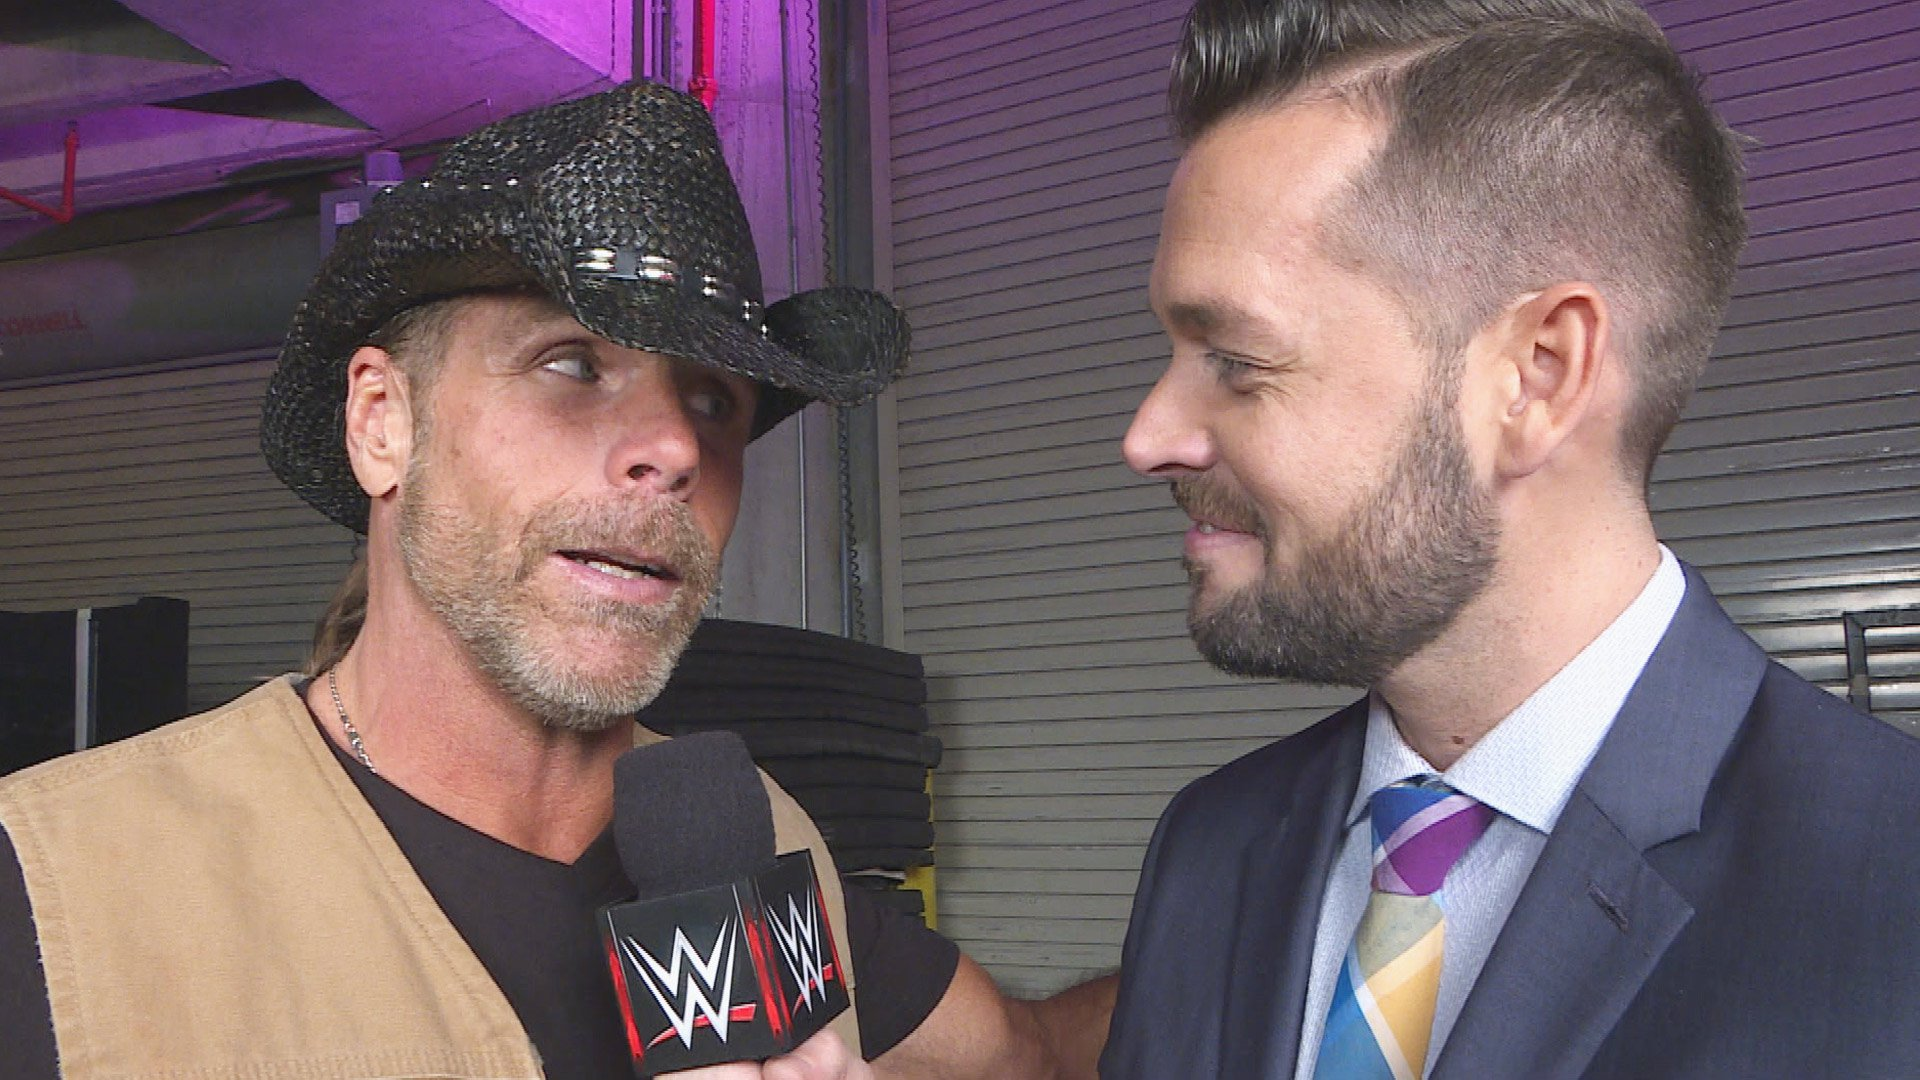 Shawn Michaels sera-t-il présent à Royal Rumble 2017 à San Antonio?: WWE.com Exclusive, 9 janvier 2017